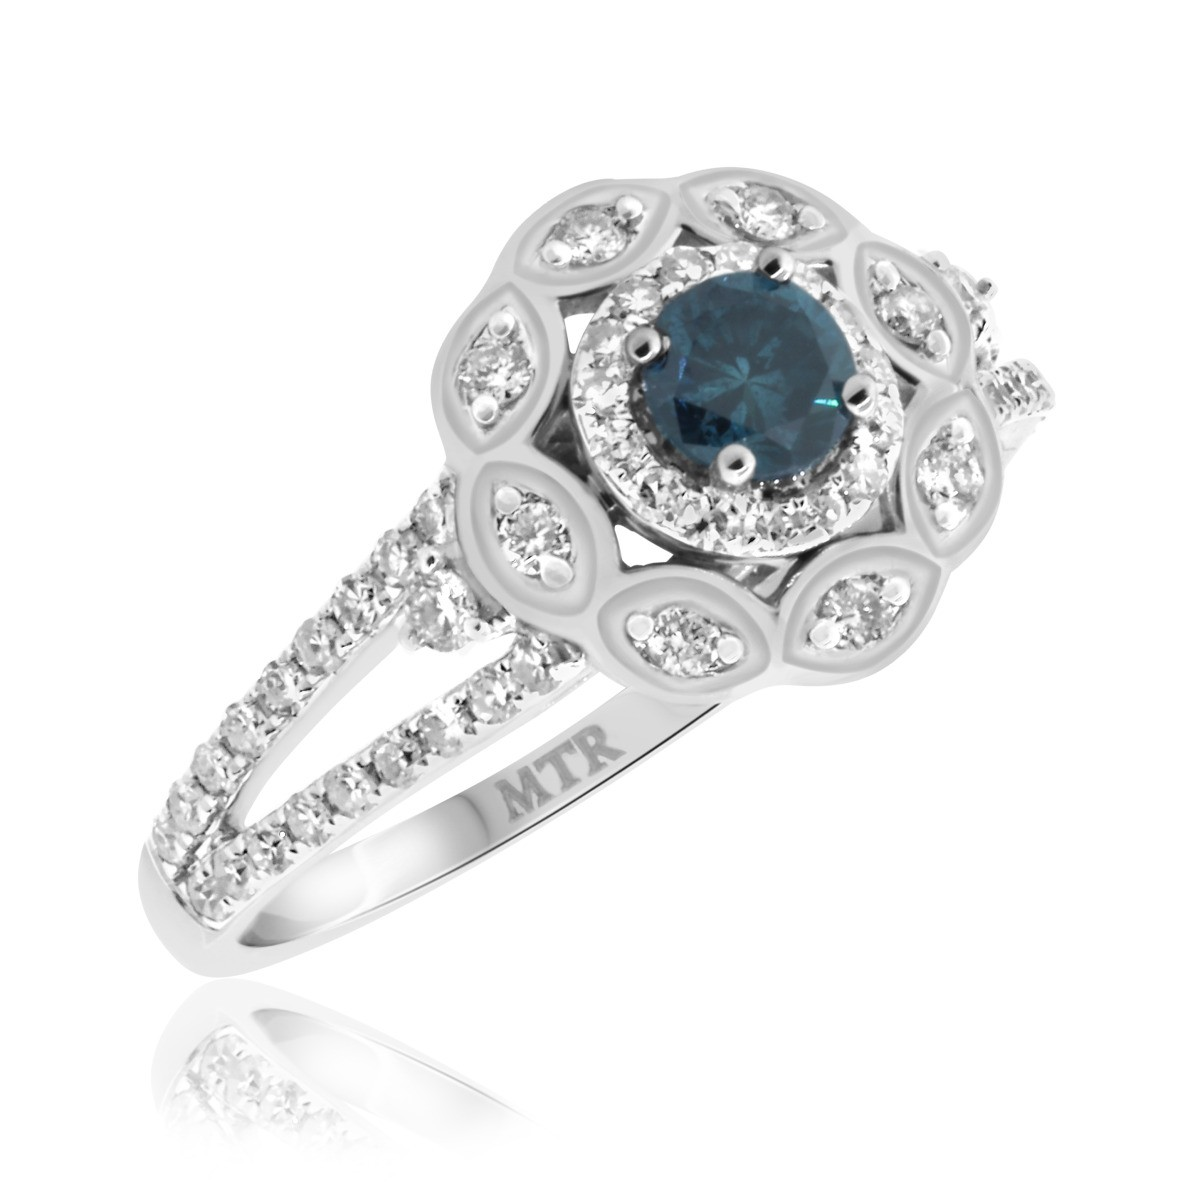 1 3/8 CT. T.W. Diamond Engagement Ring 14K White Gold